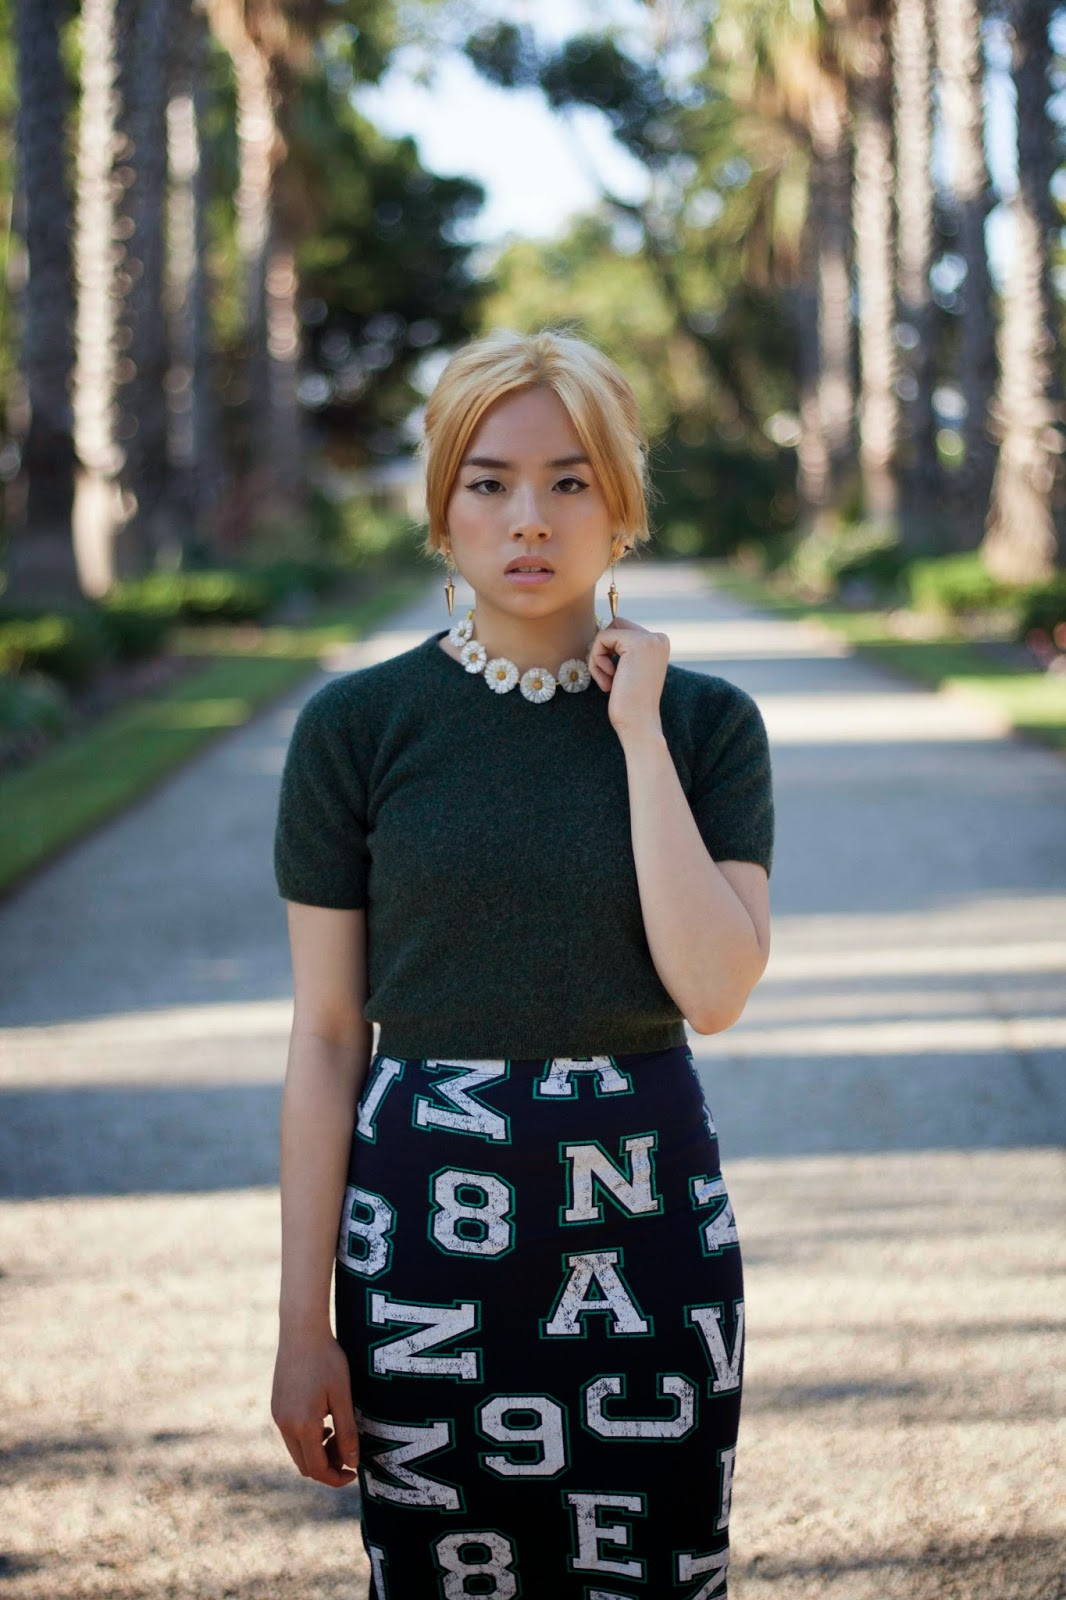 Jenny modelling long skirt and crop top